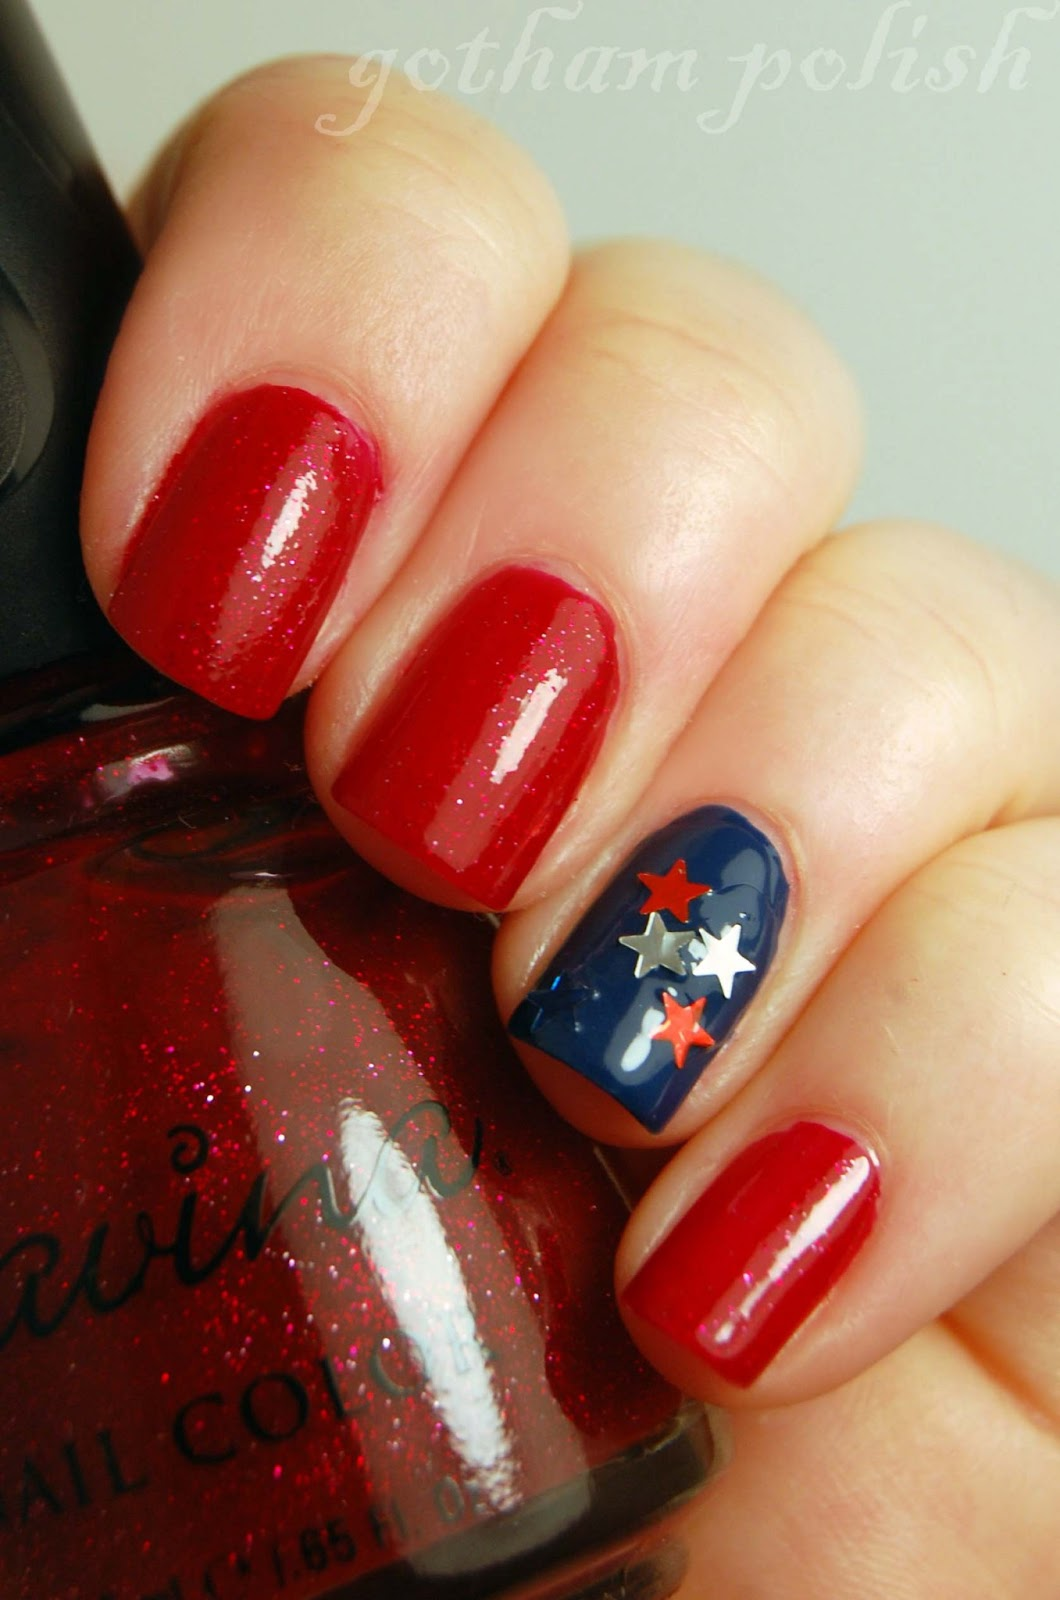 Cute 4th of July Nails Designs | Simple 4th of July Nails Ideas. This is a great celebration for your nail parties, be creative with the design, and make these designs on your fingernails and give them enough time to dry properly. Otherwise, your hard work can be ruined. So, take care of these nail art designs with the necessary precautions.